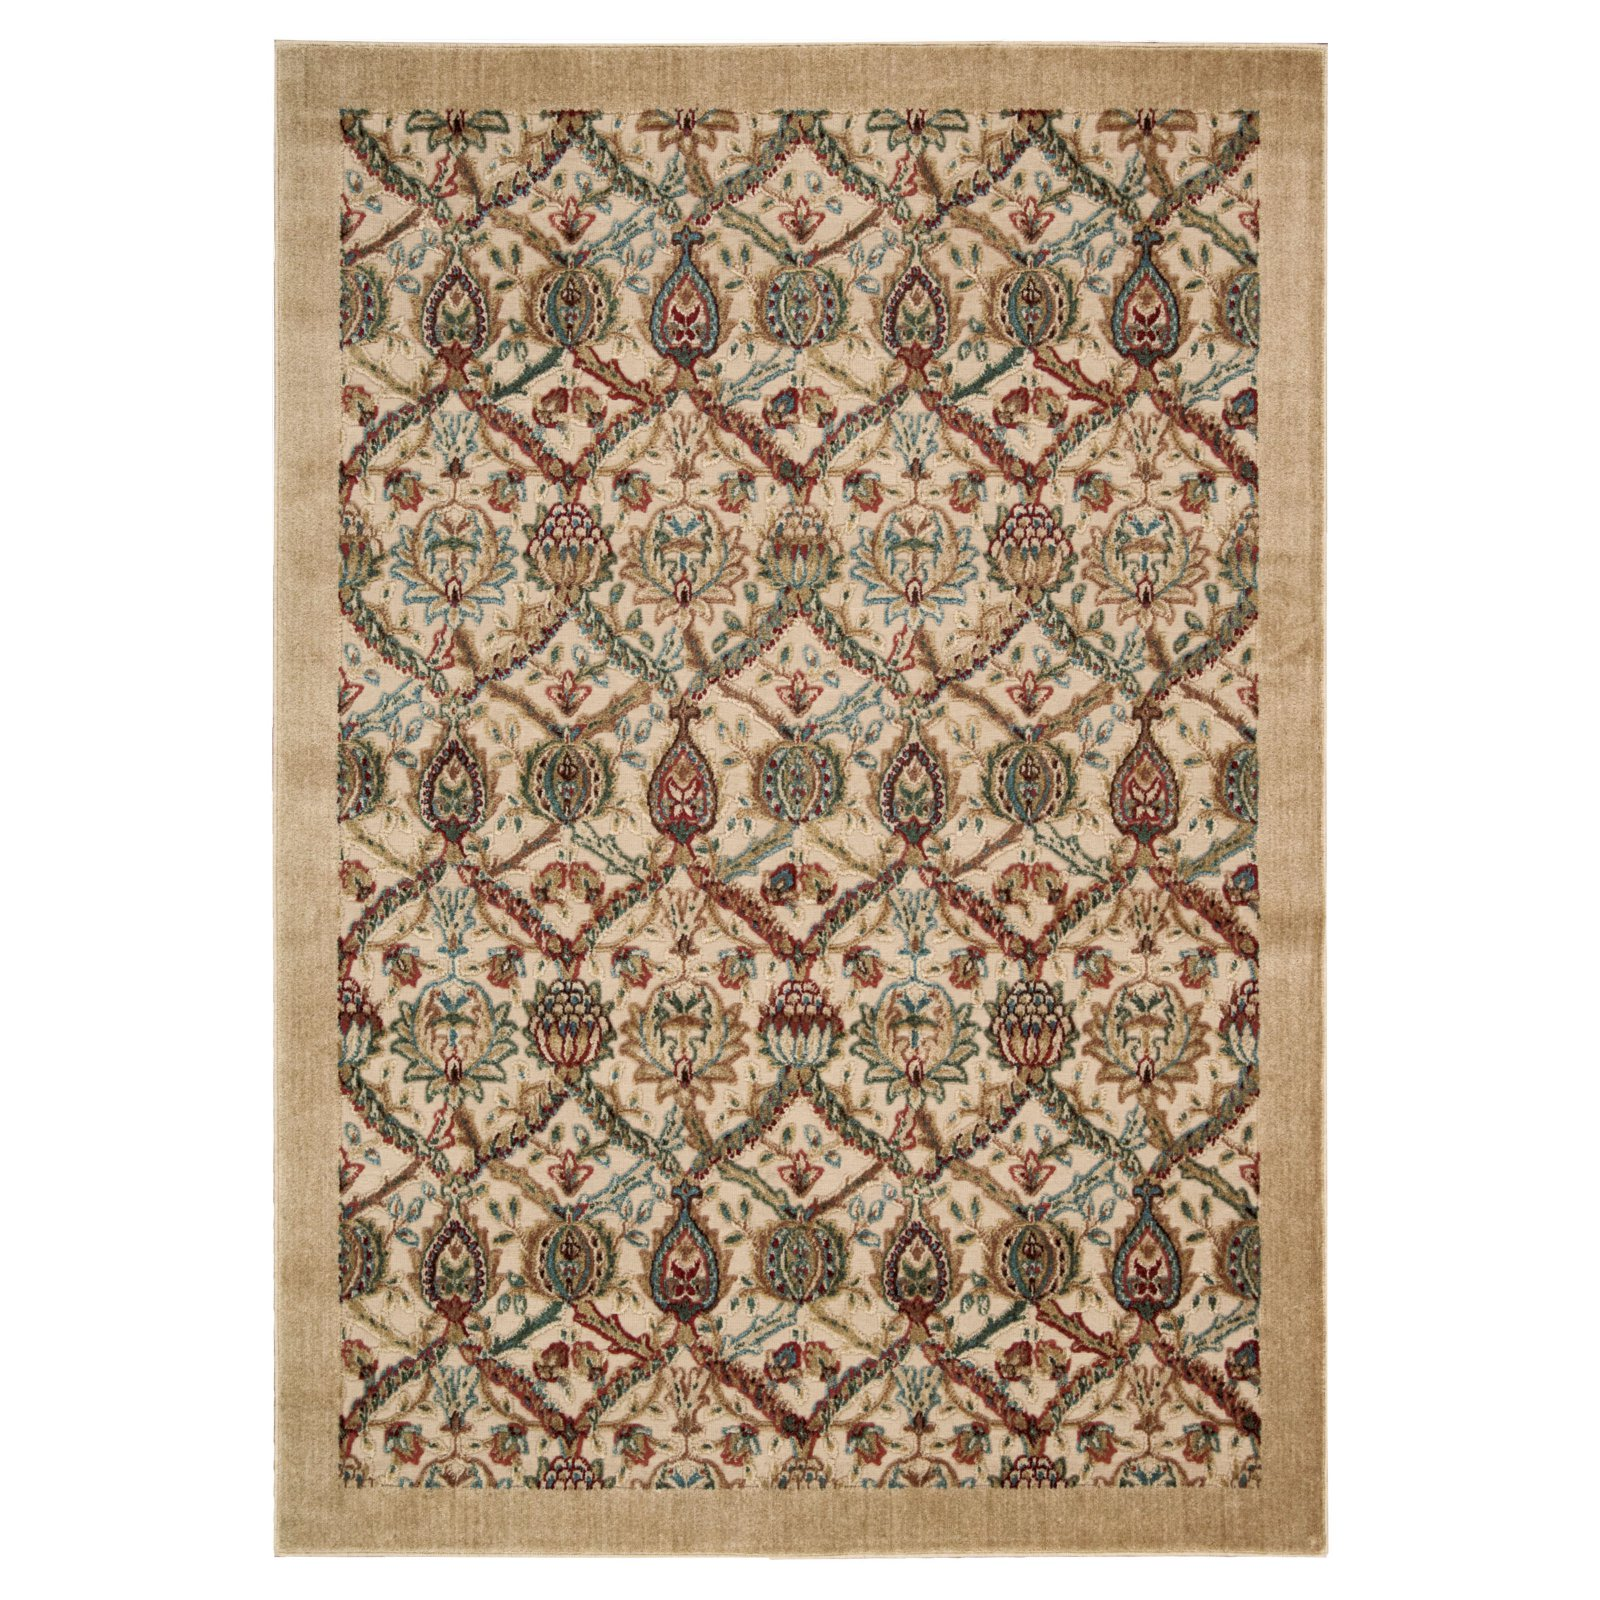 Nourison Graphic Illusions Bold Textured Damask Area Rug